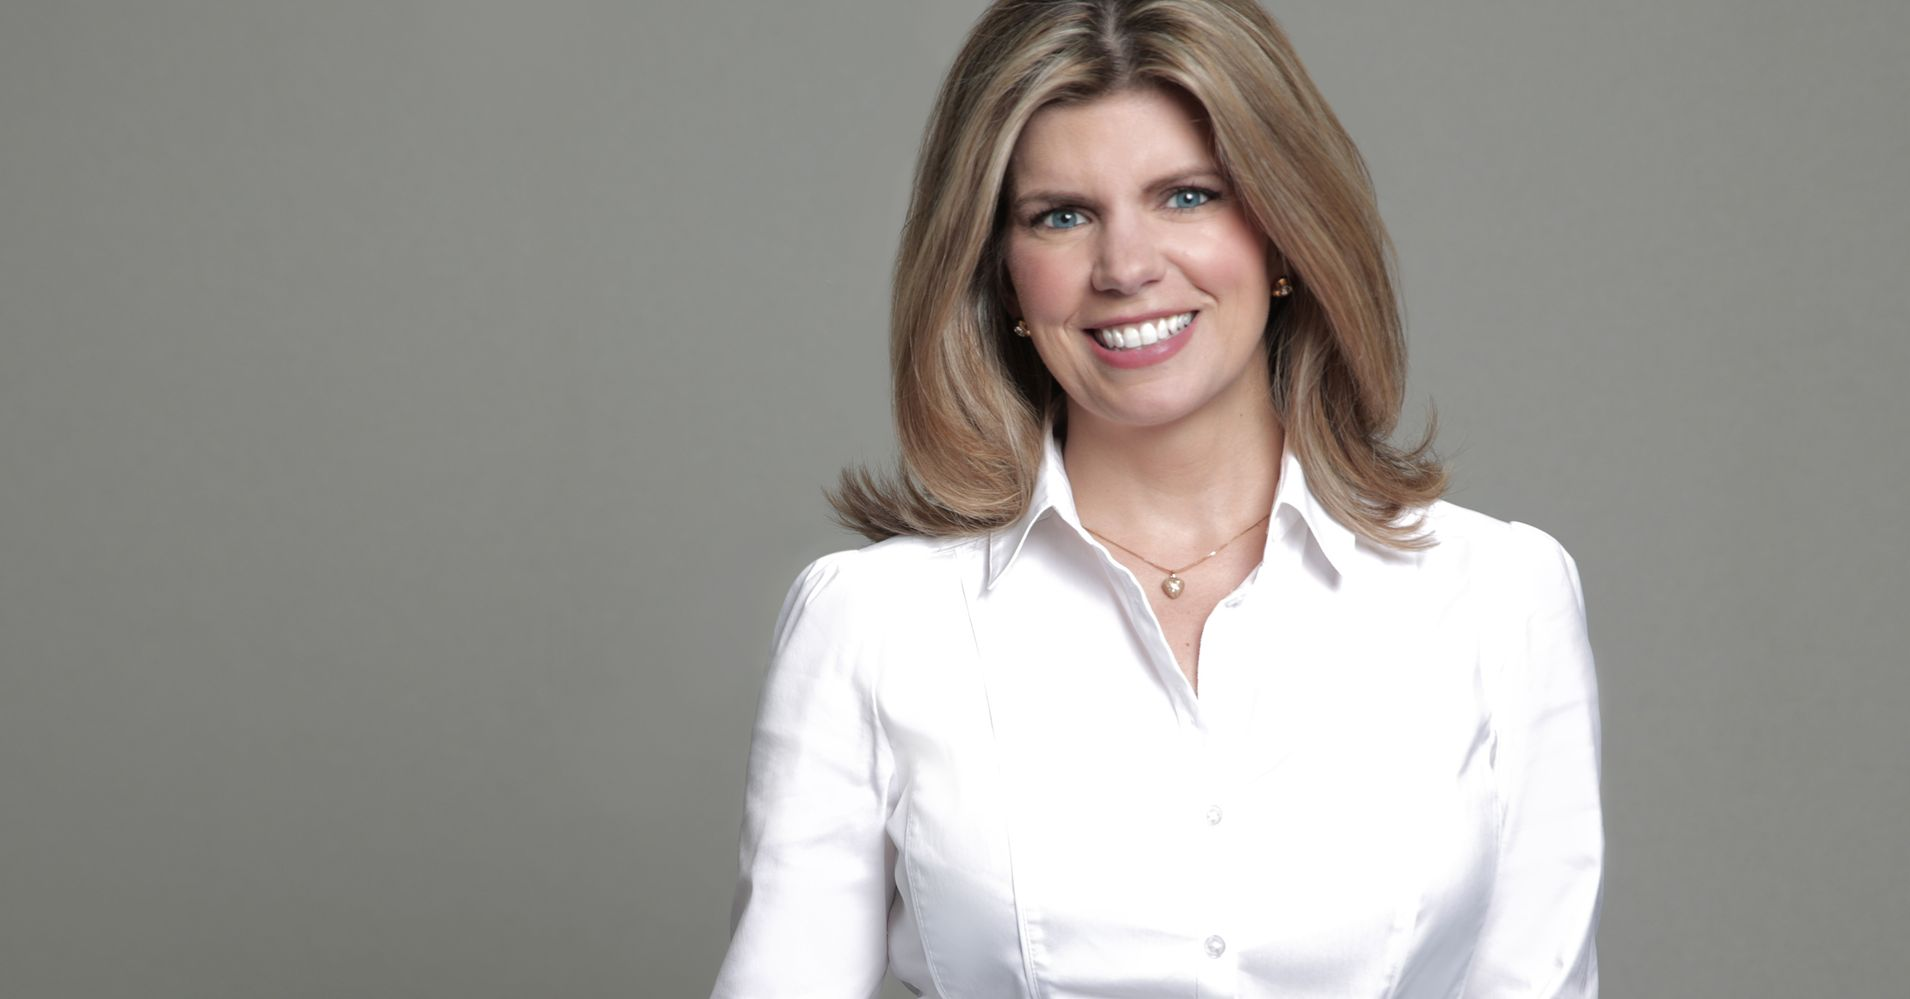 Women in Business Q&A: Tracy Skeans, Chief Transformation and People Officer, Yum! Brands